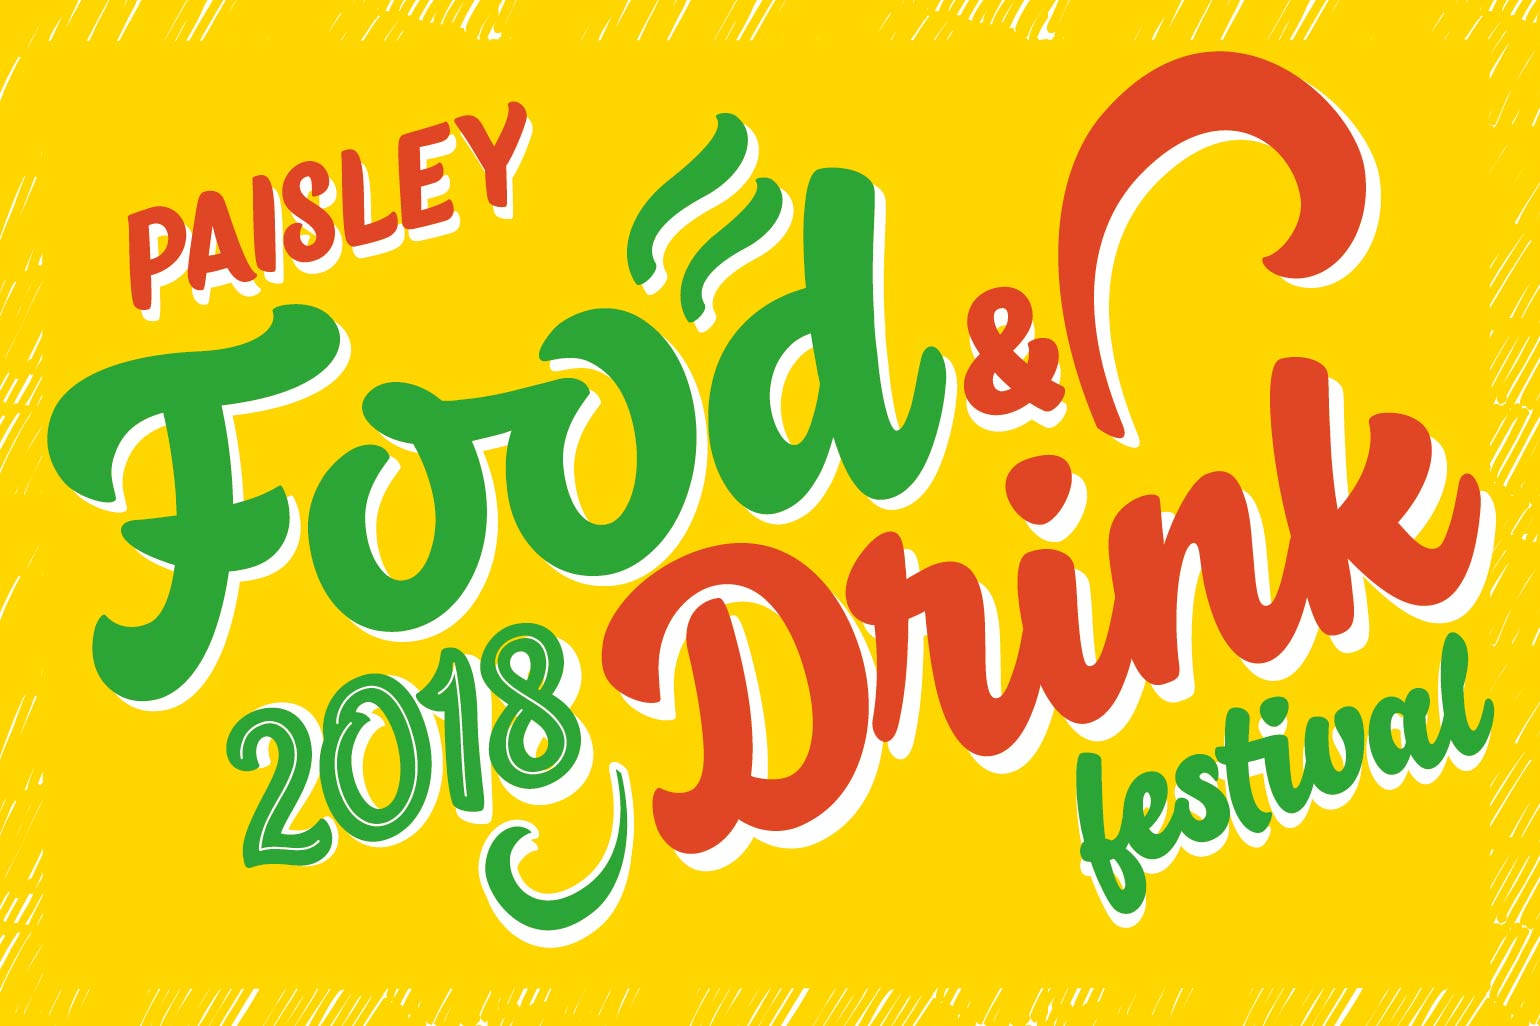 Paisley Food and Drink Festival 2018 logo